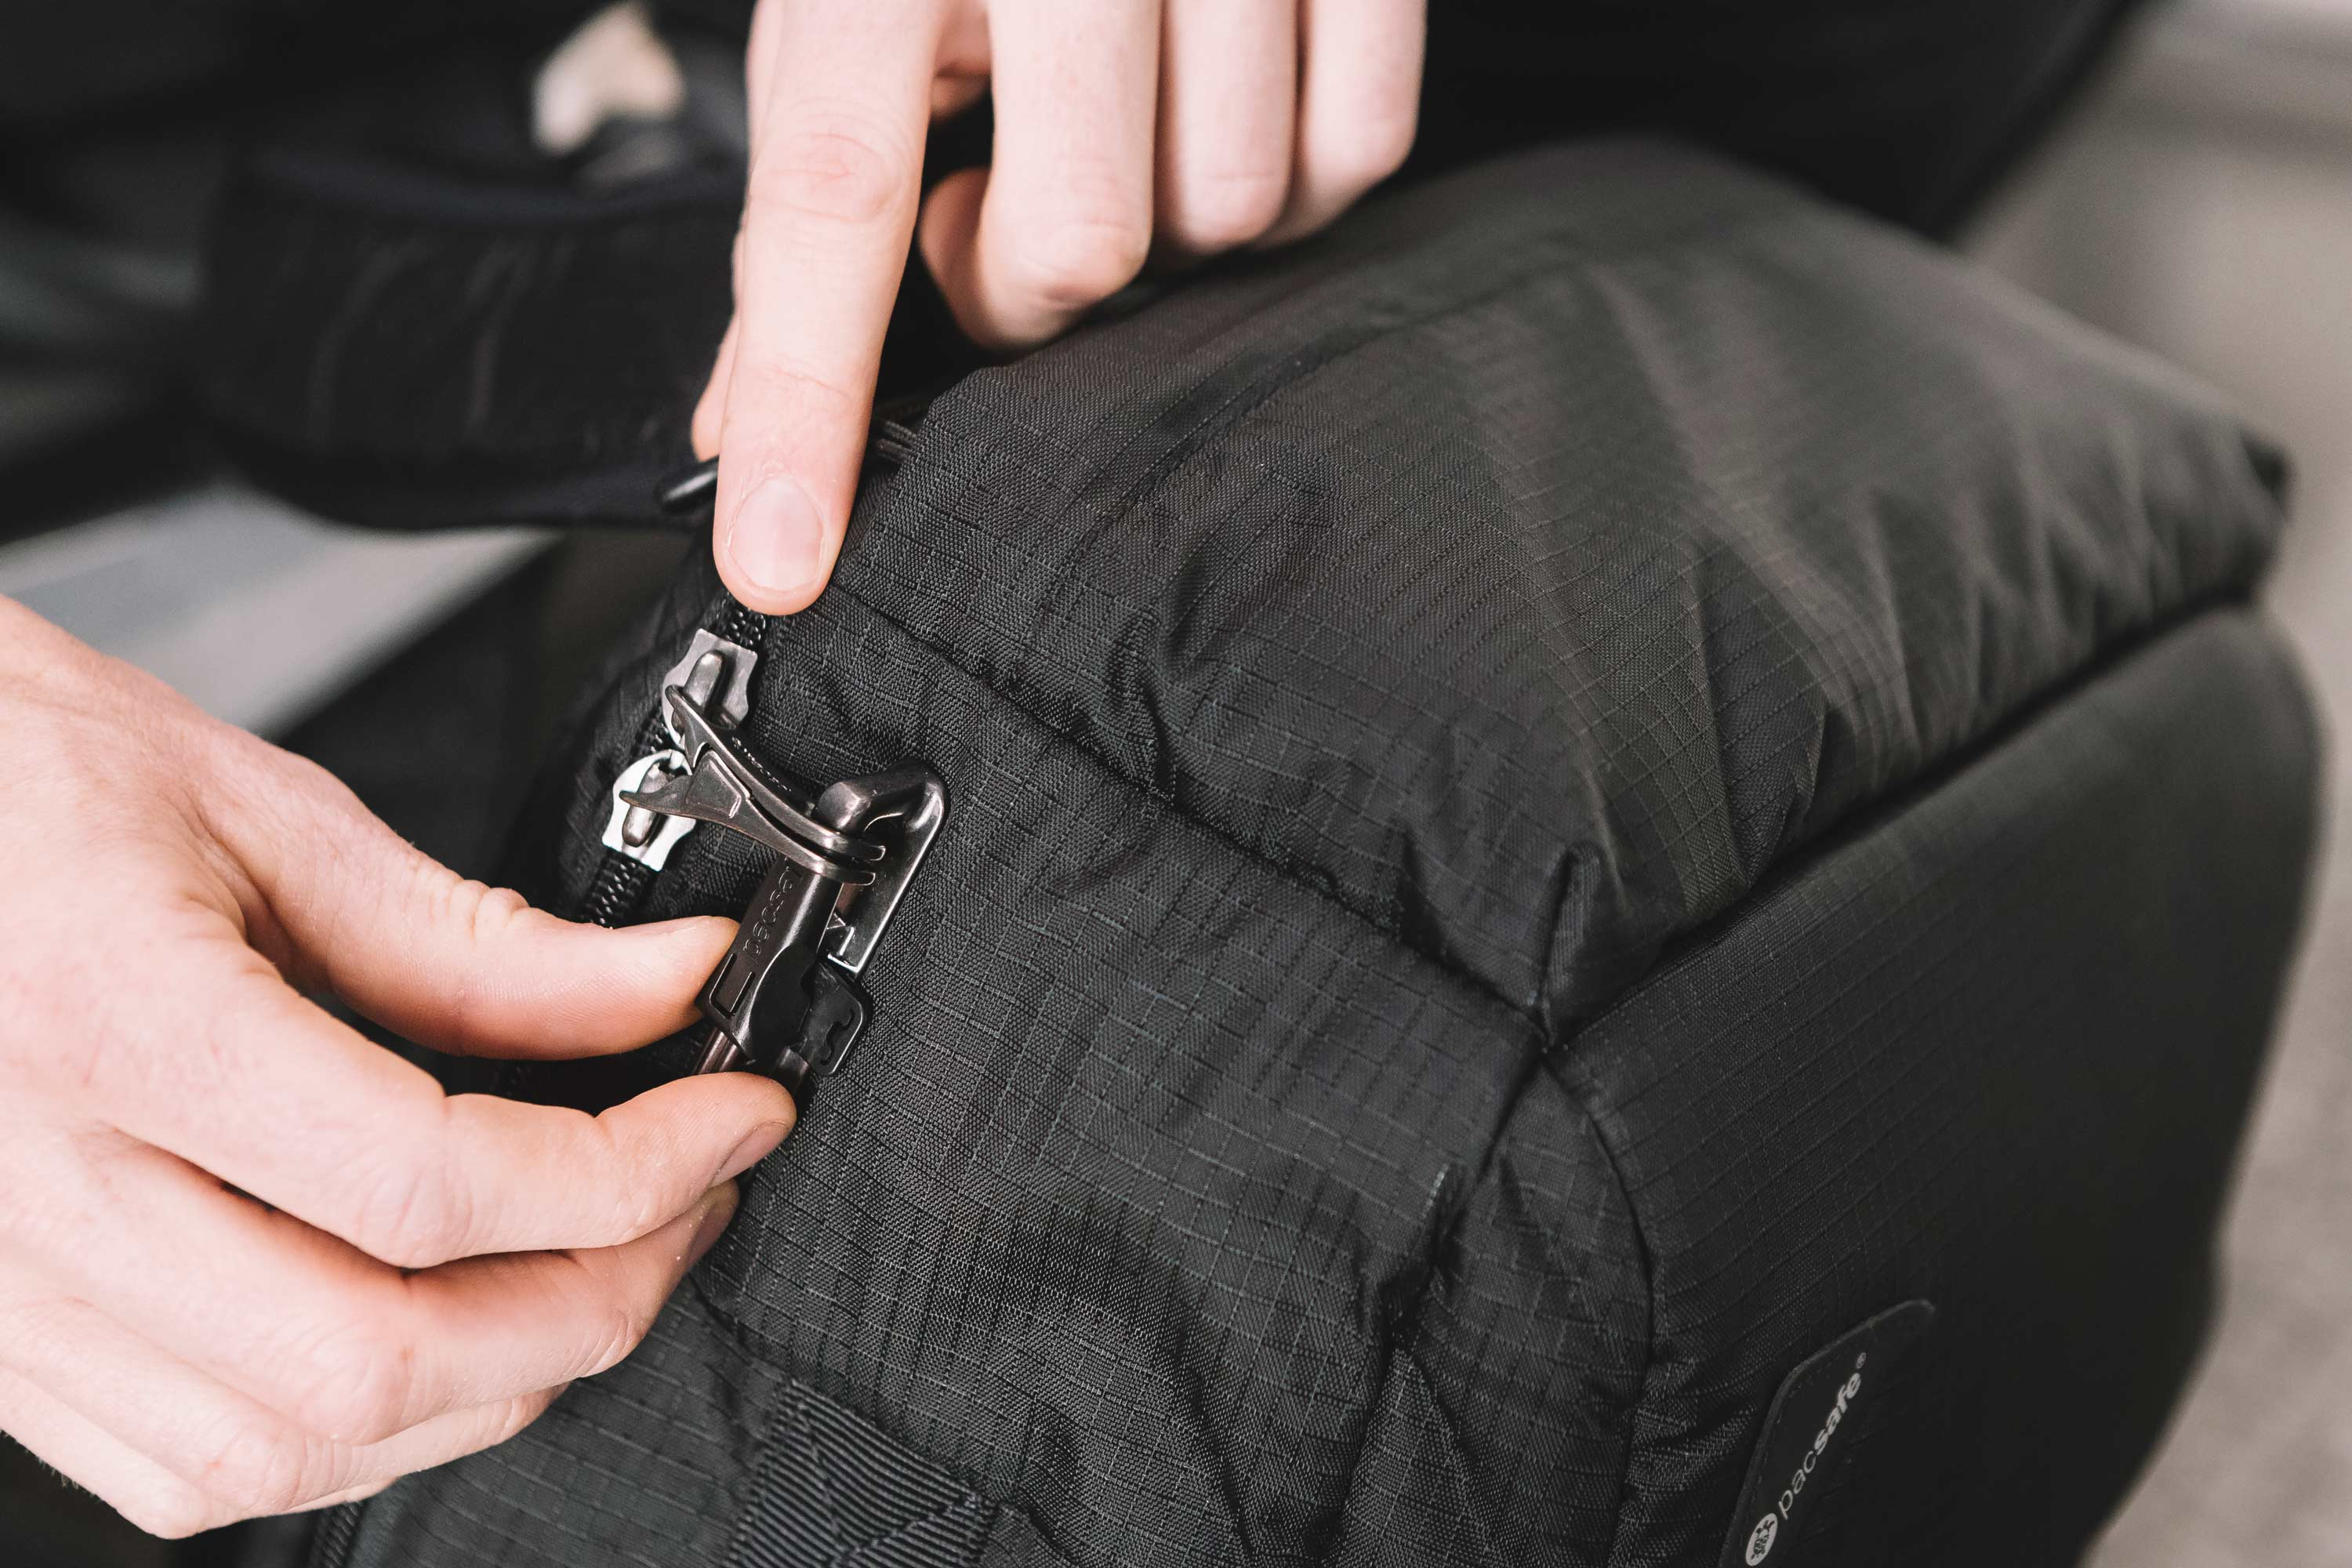 5 Ingenious Ways To Keep Your Valuables Safe When Traveling